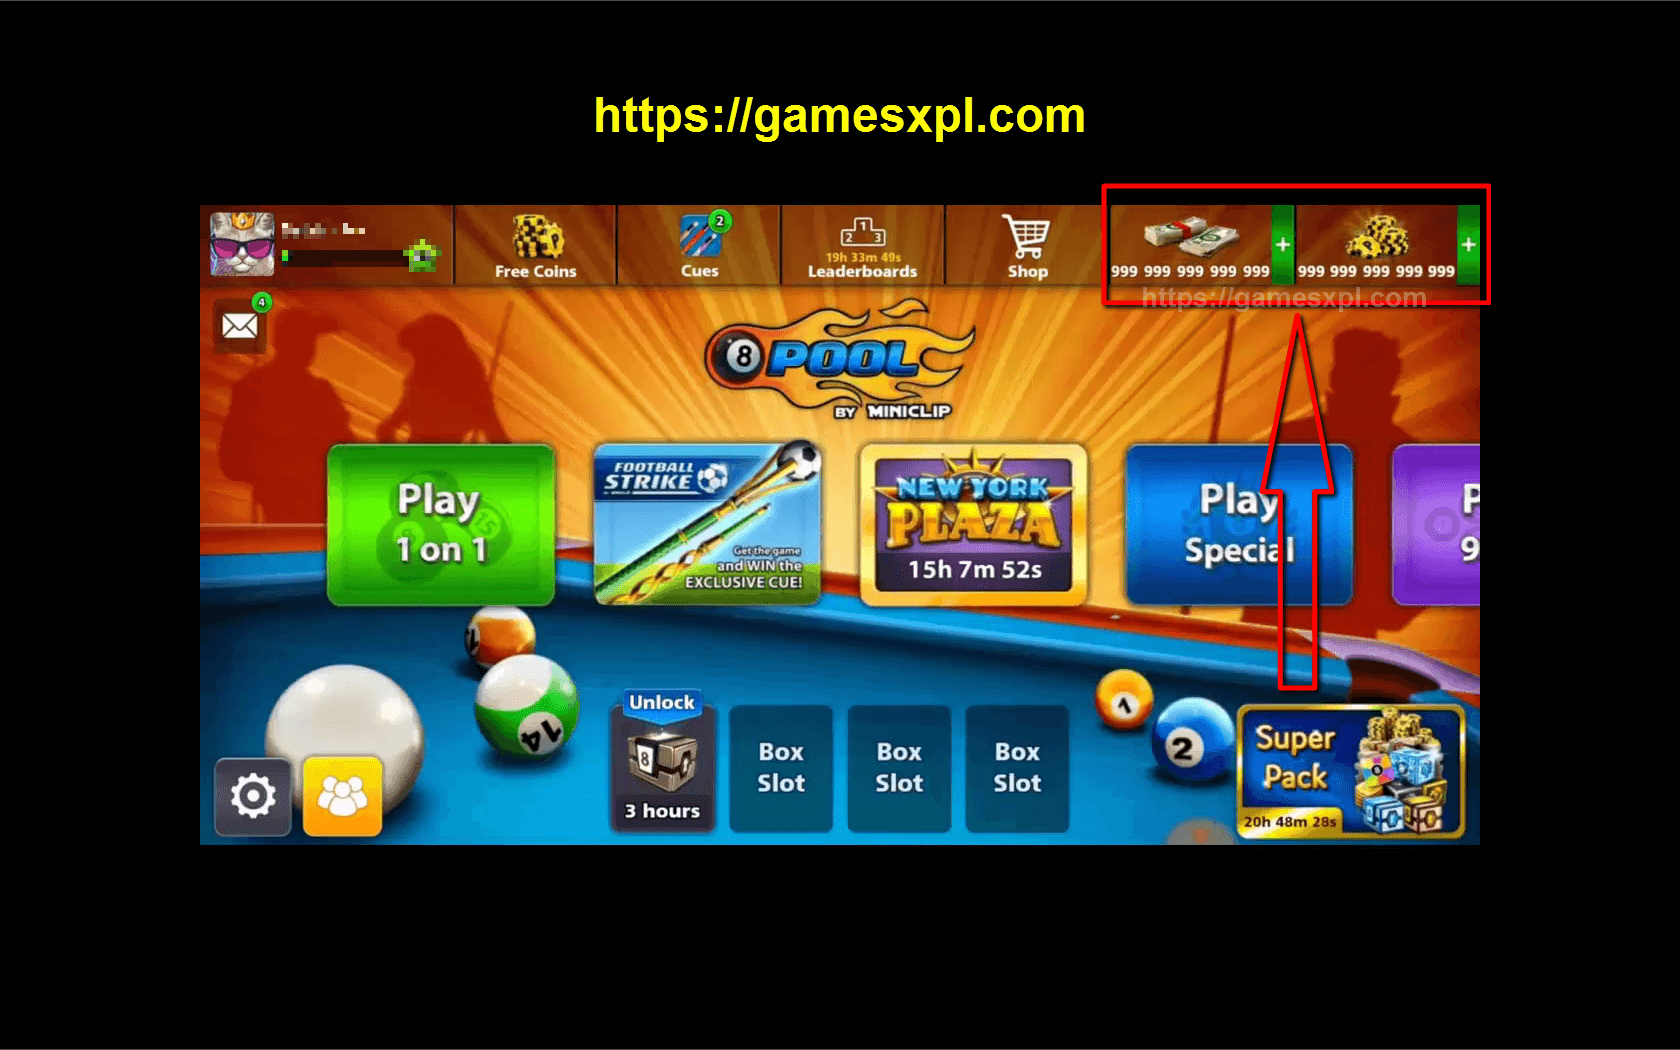 8 Ball Pool Hack Mod Apk – How to Get Unlimited Cash and